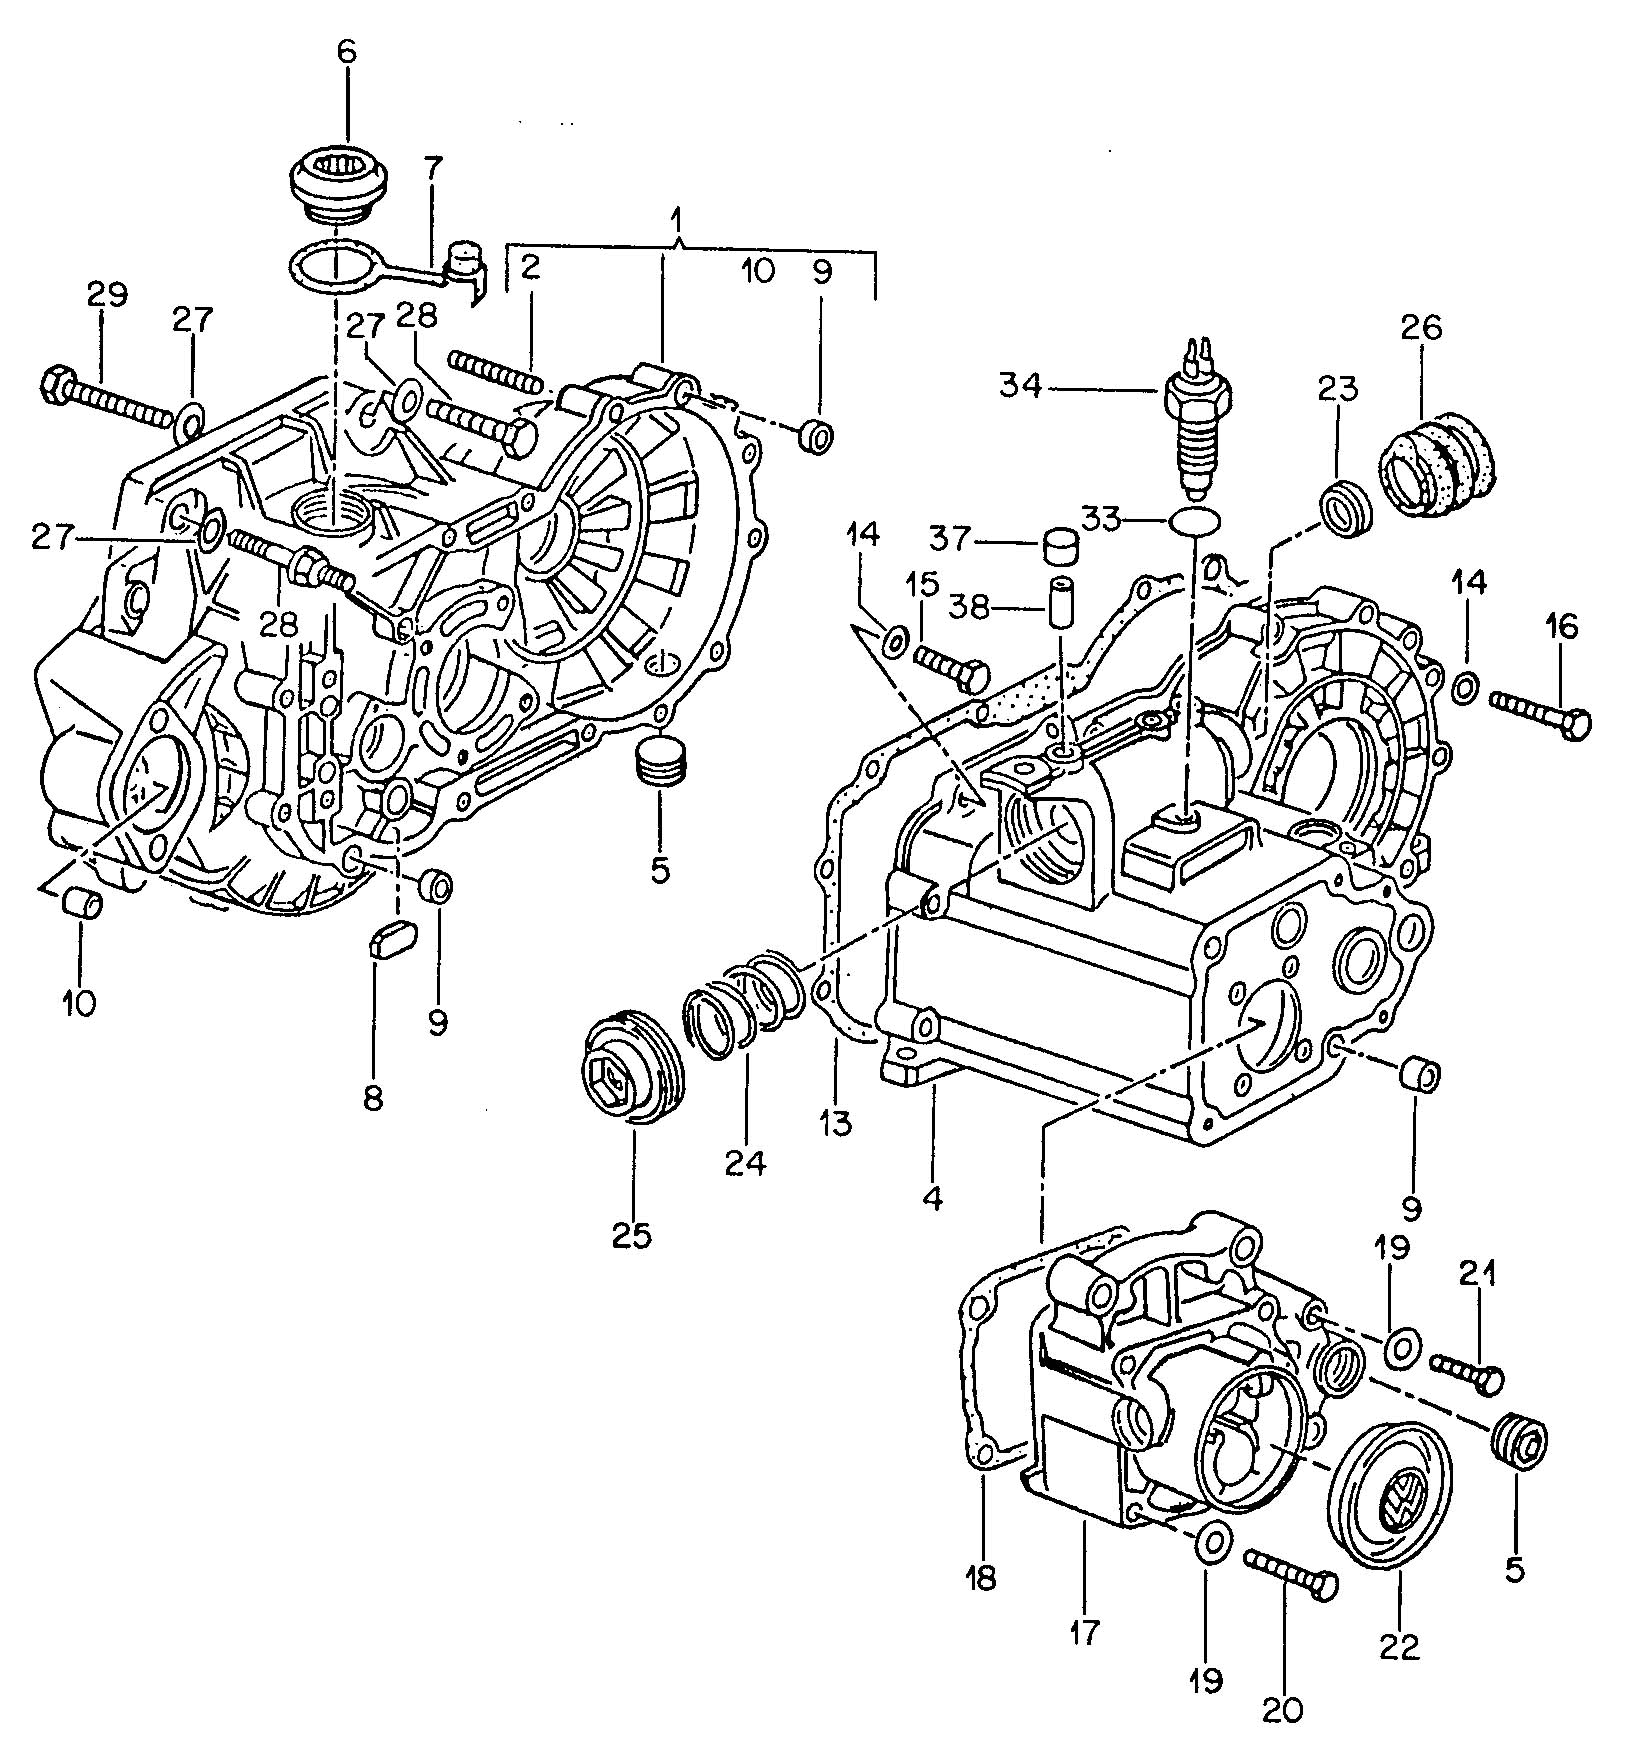 Parts Diagram As Well Vw Beetle Engine Wiring On 70 Vw Wiring Diagram